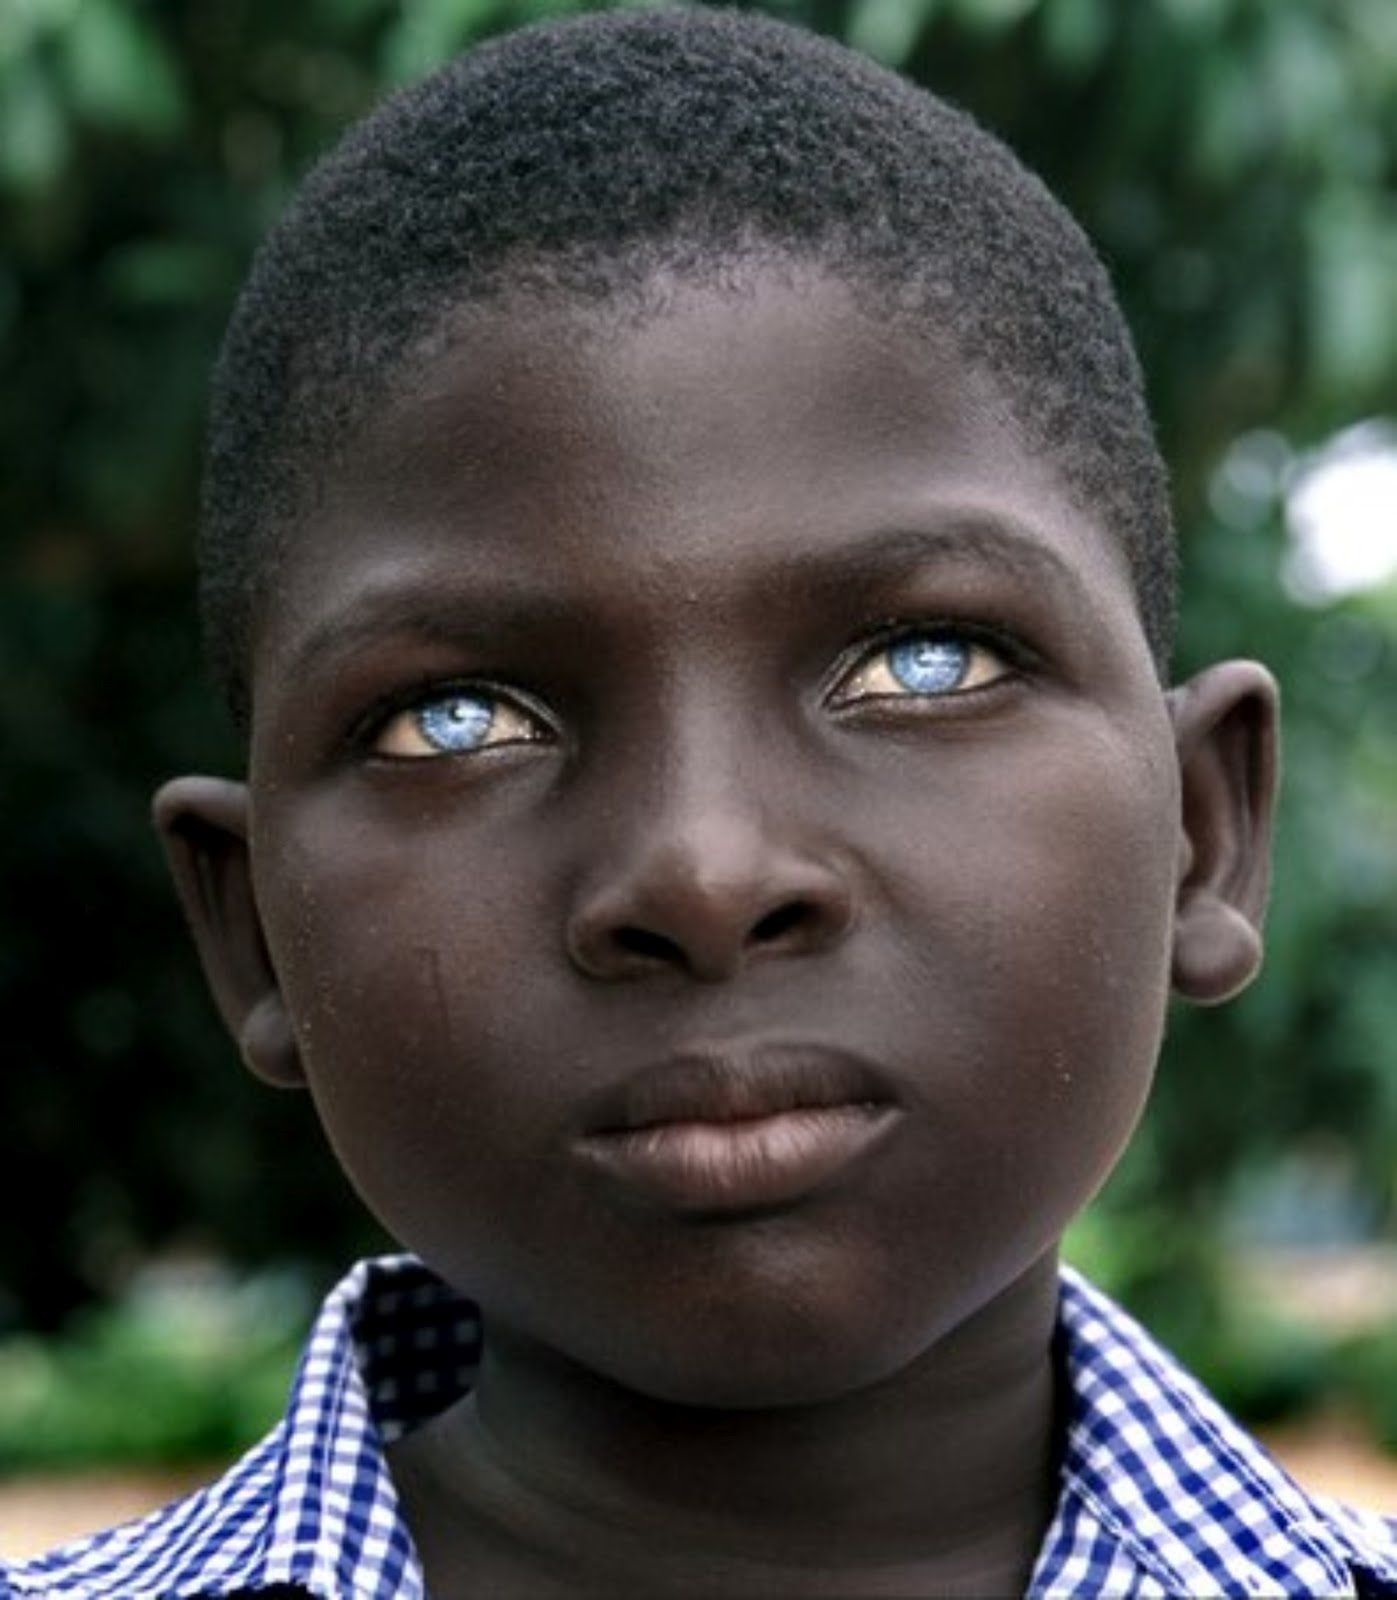 African Boy Blue Eyes